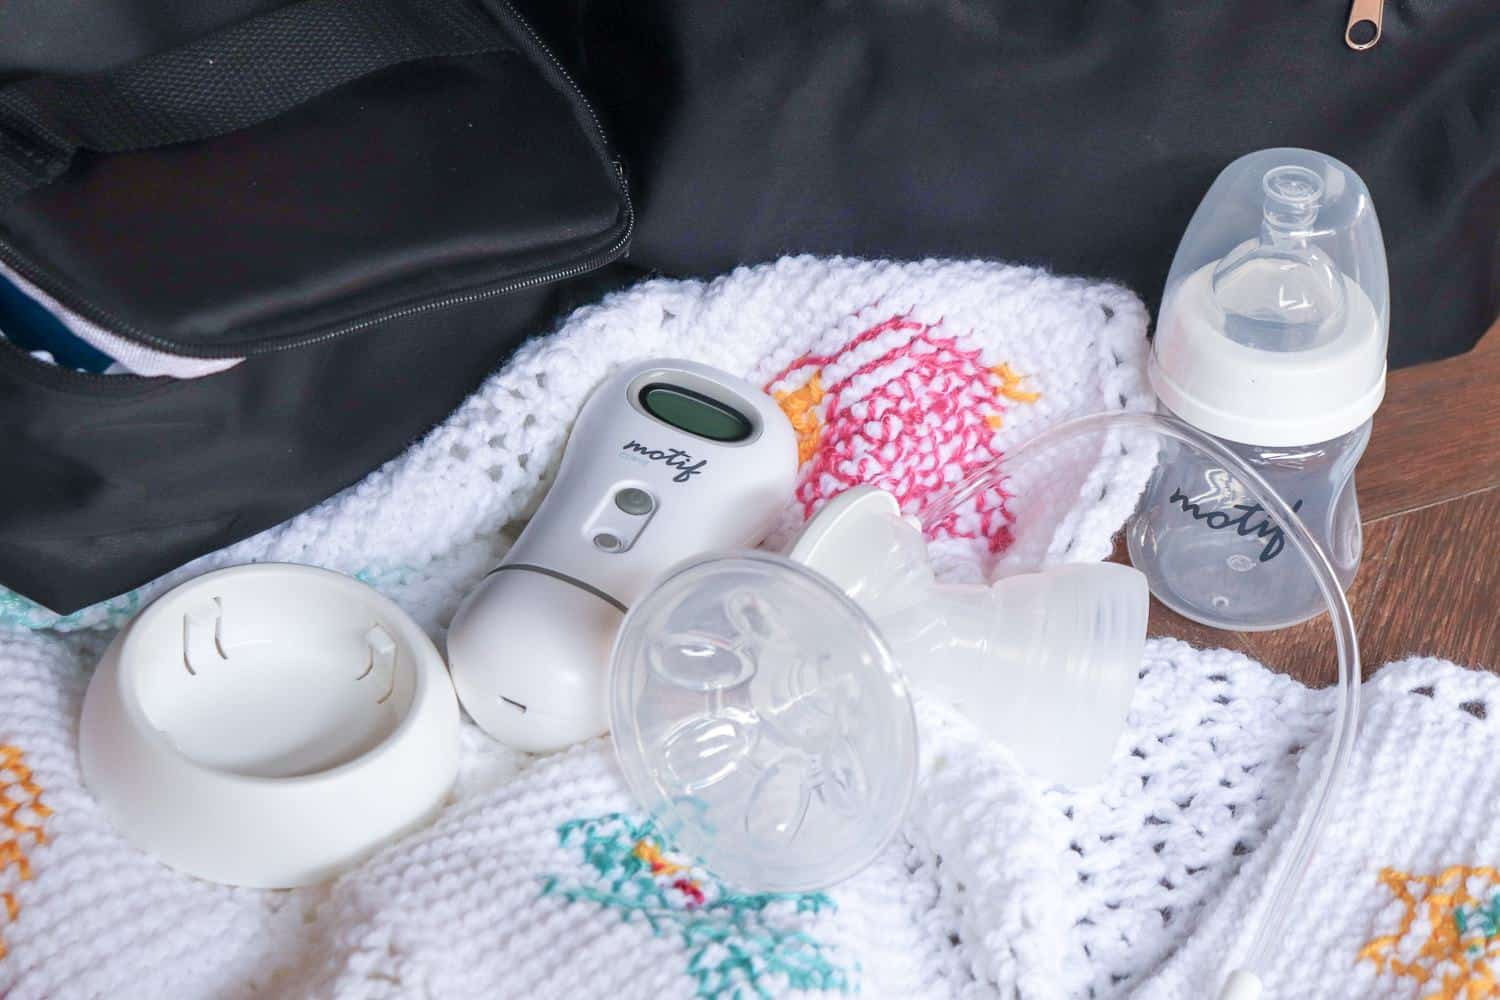 5 Things You Should Know Before Choosing a Breast Pump